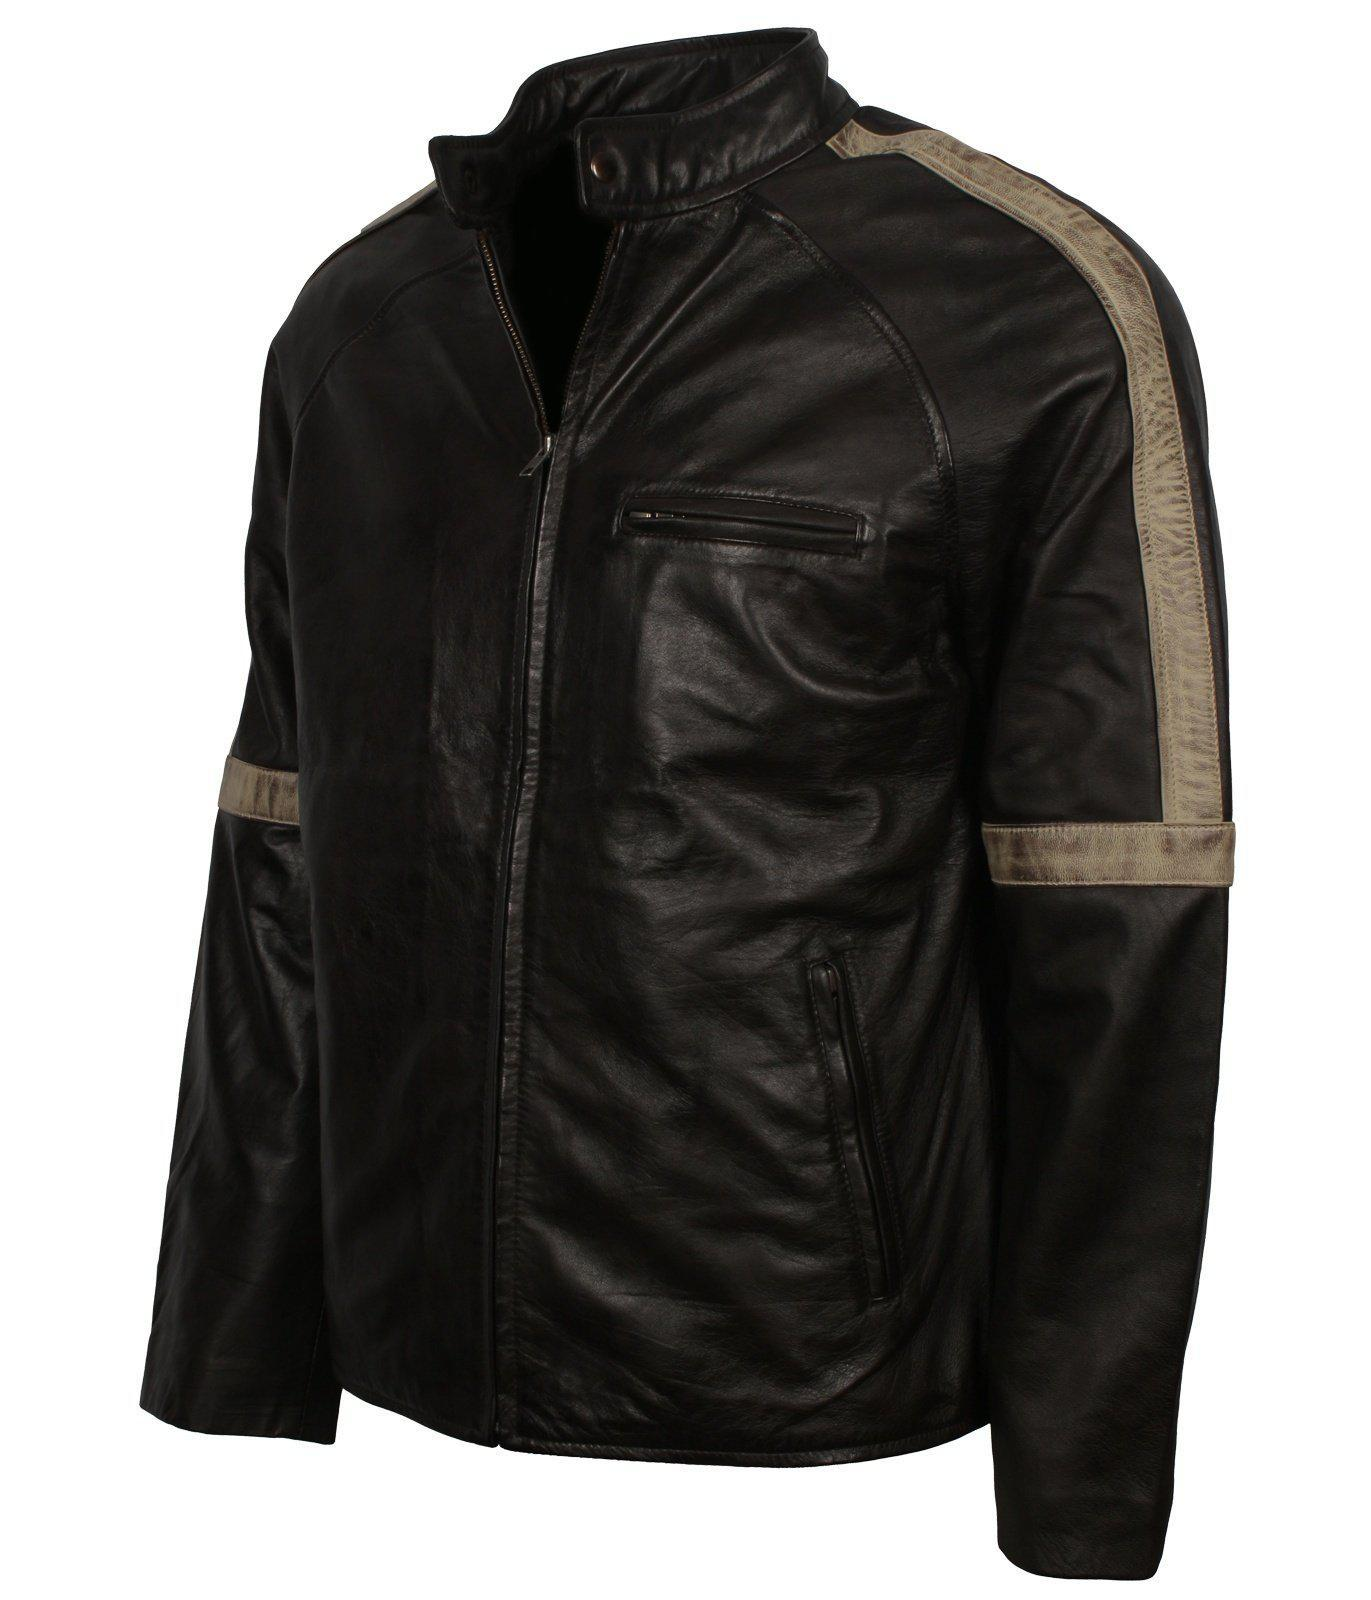 Mens Black Vintage Leather Jacket